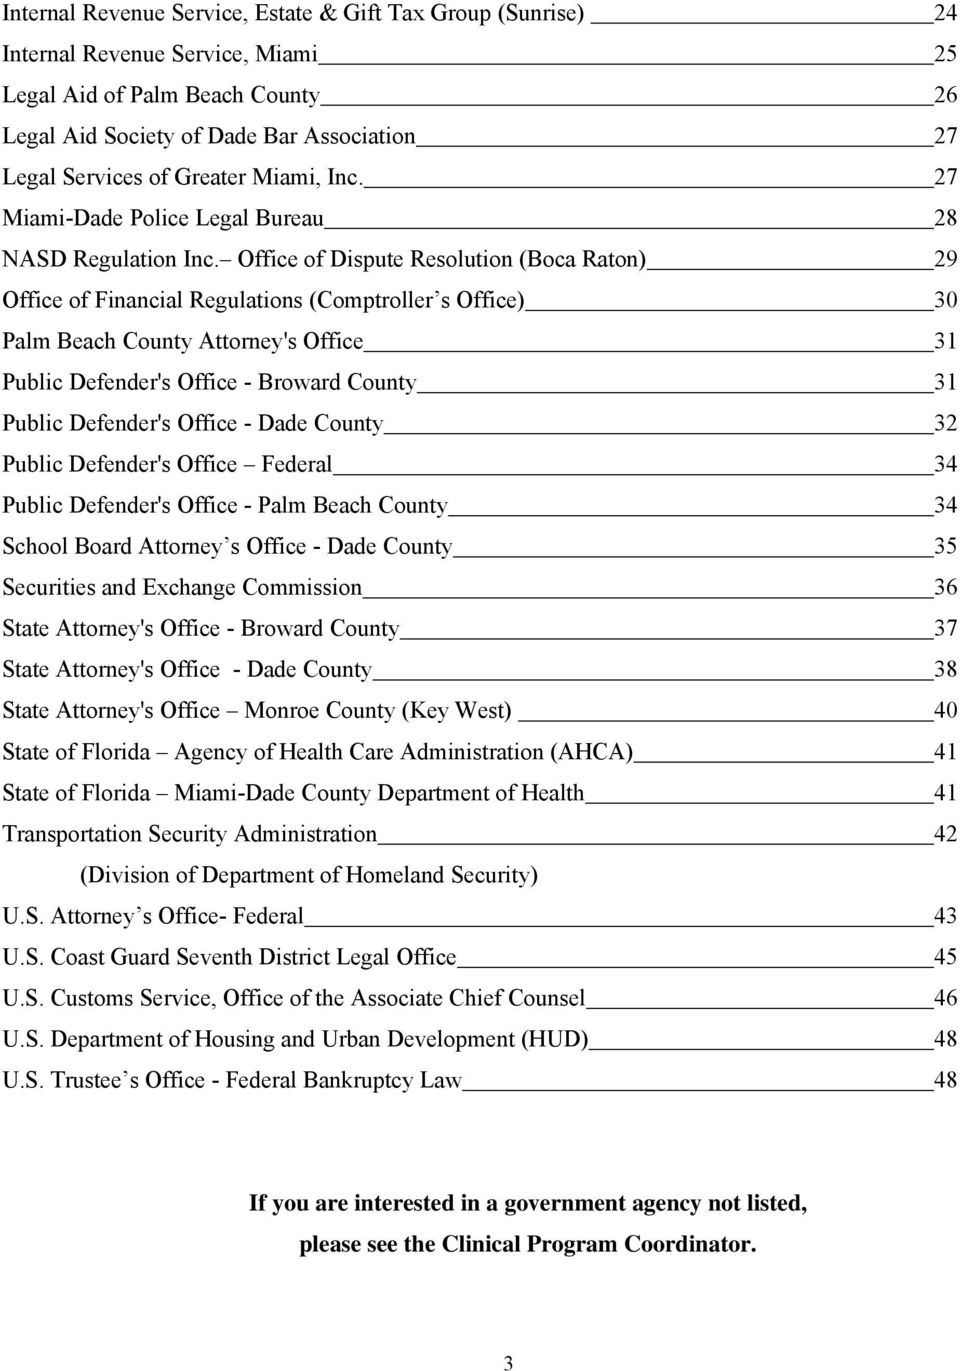 Office of Dispute Resolution (Boca Raton) 29 Office of Financial Regulations (Comptroller s Office) 30 Palm Beach County Attorney's Office 31 Public Defender's Office - Broward County 31 Public